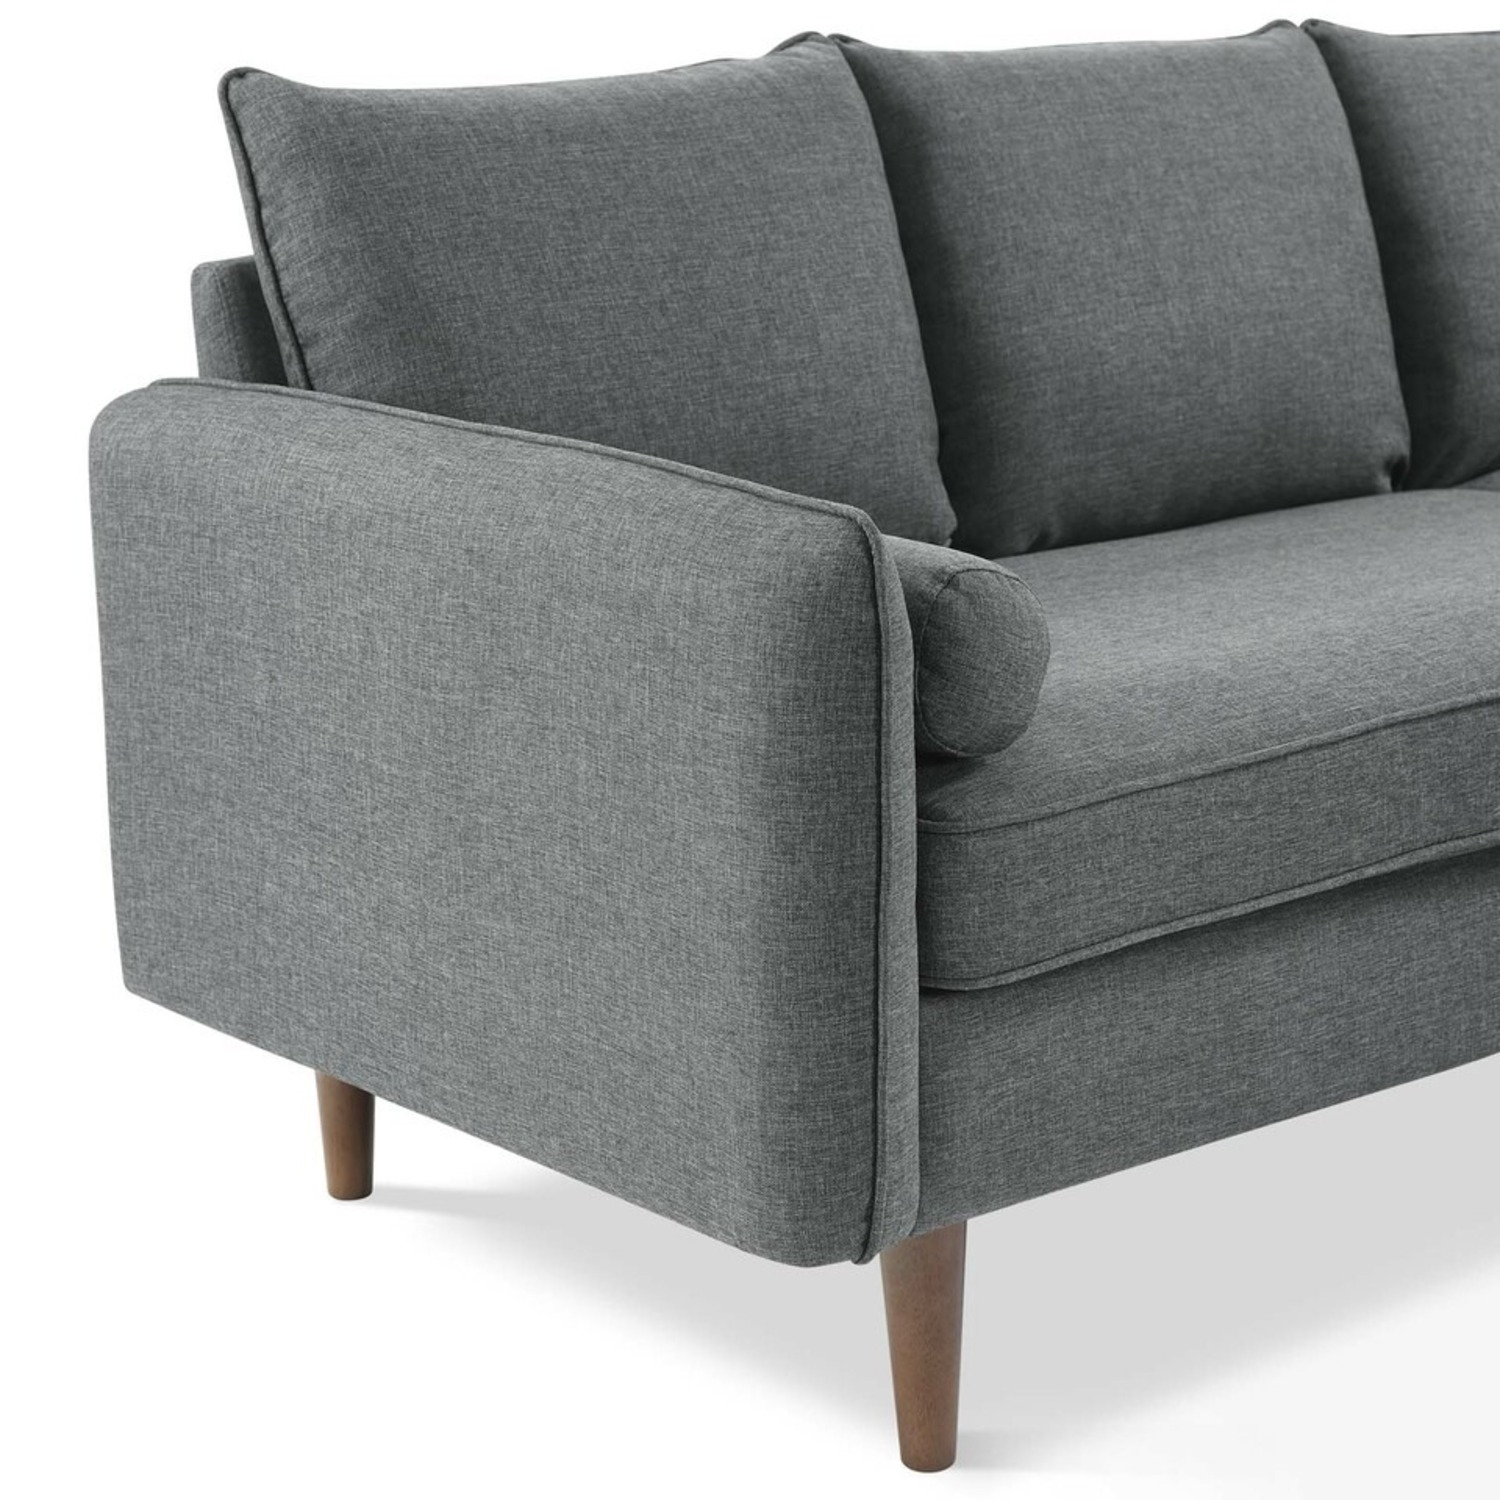 2-Piece Sectional Sofa In Gray Upholstery Finish - image-5